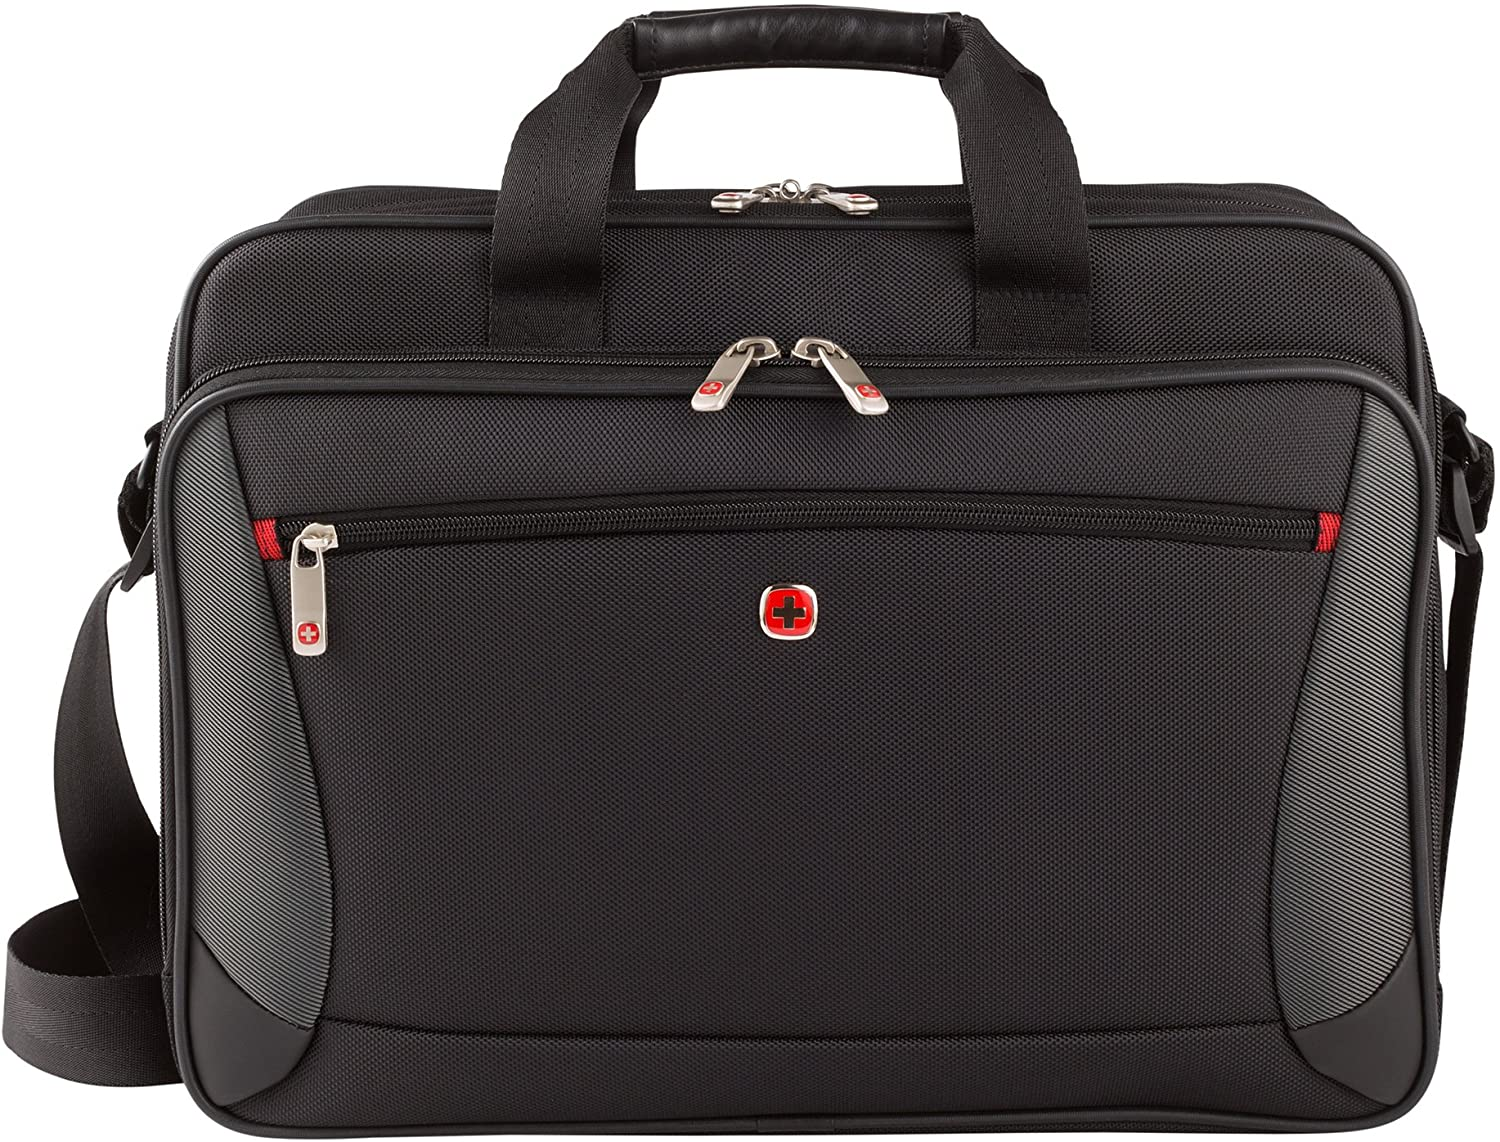 "Wenger Luggage Mainframe 15.6"" Laptop Brief Bag, Black, One Size"